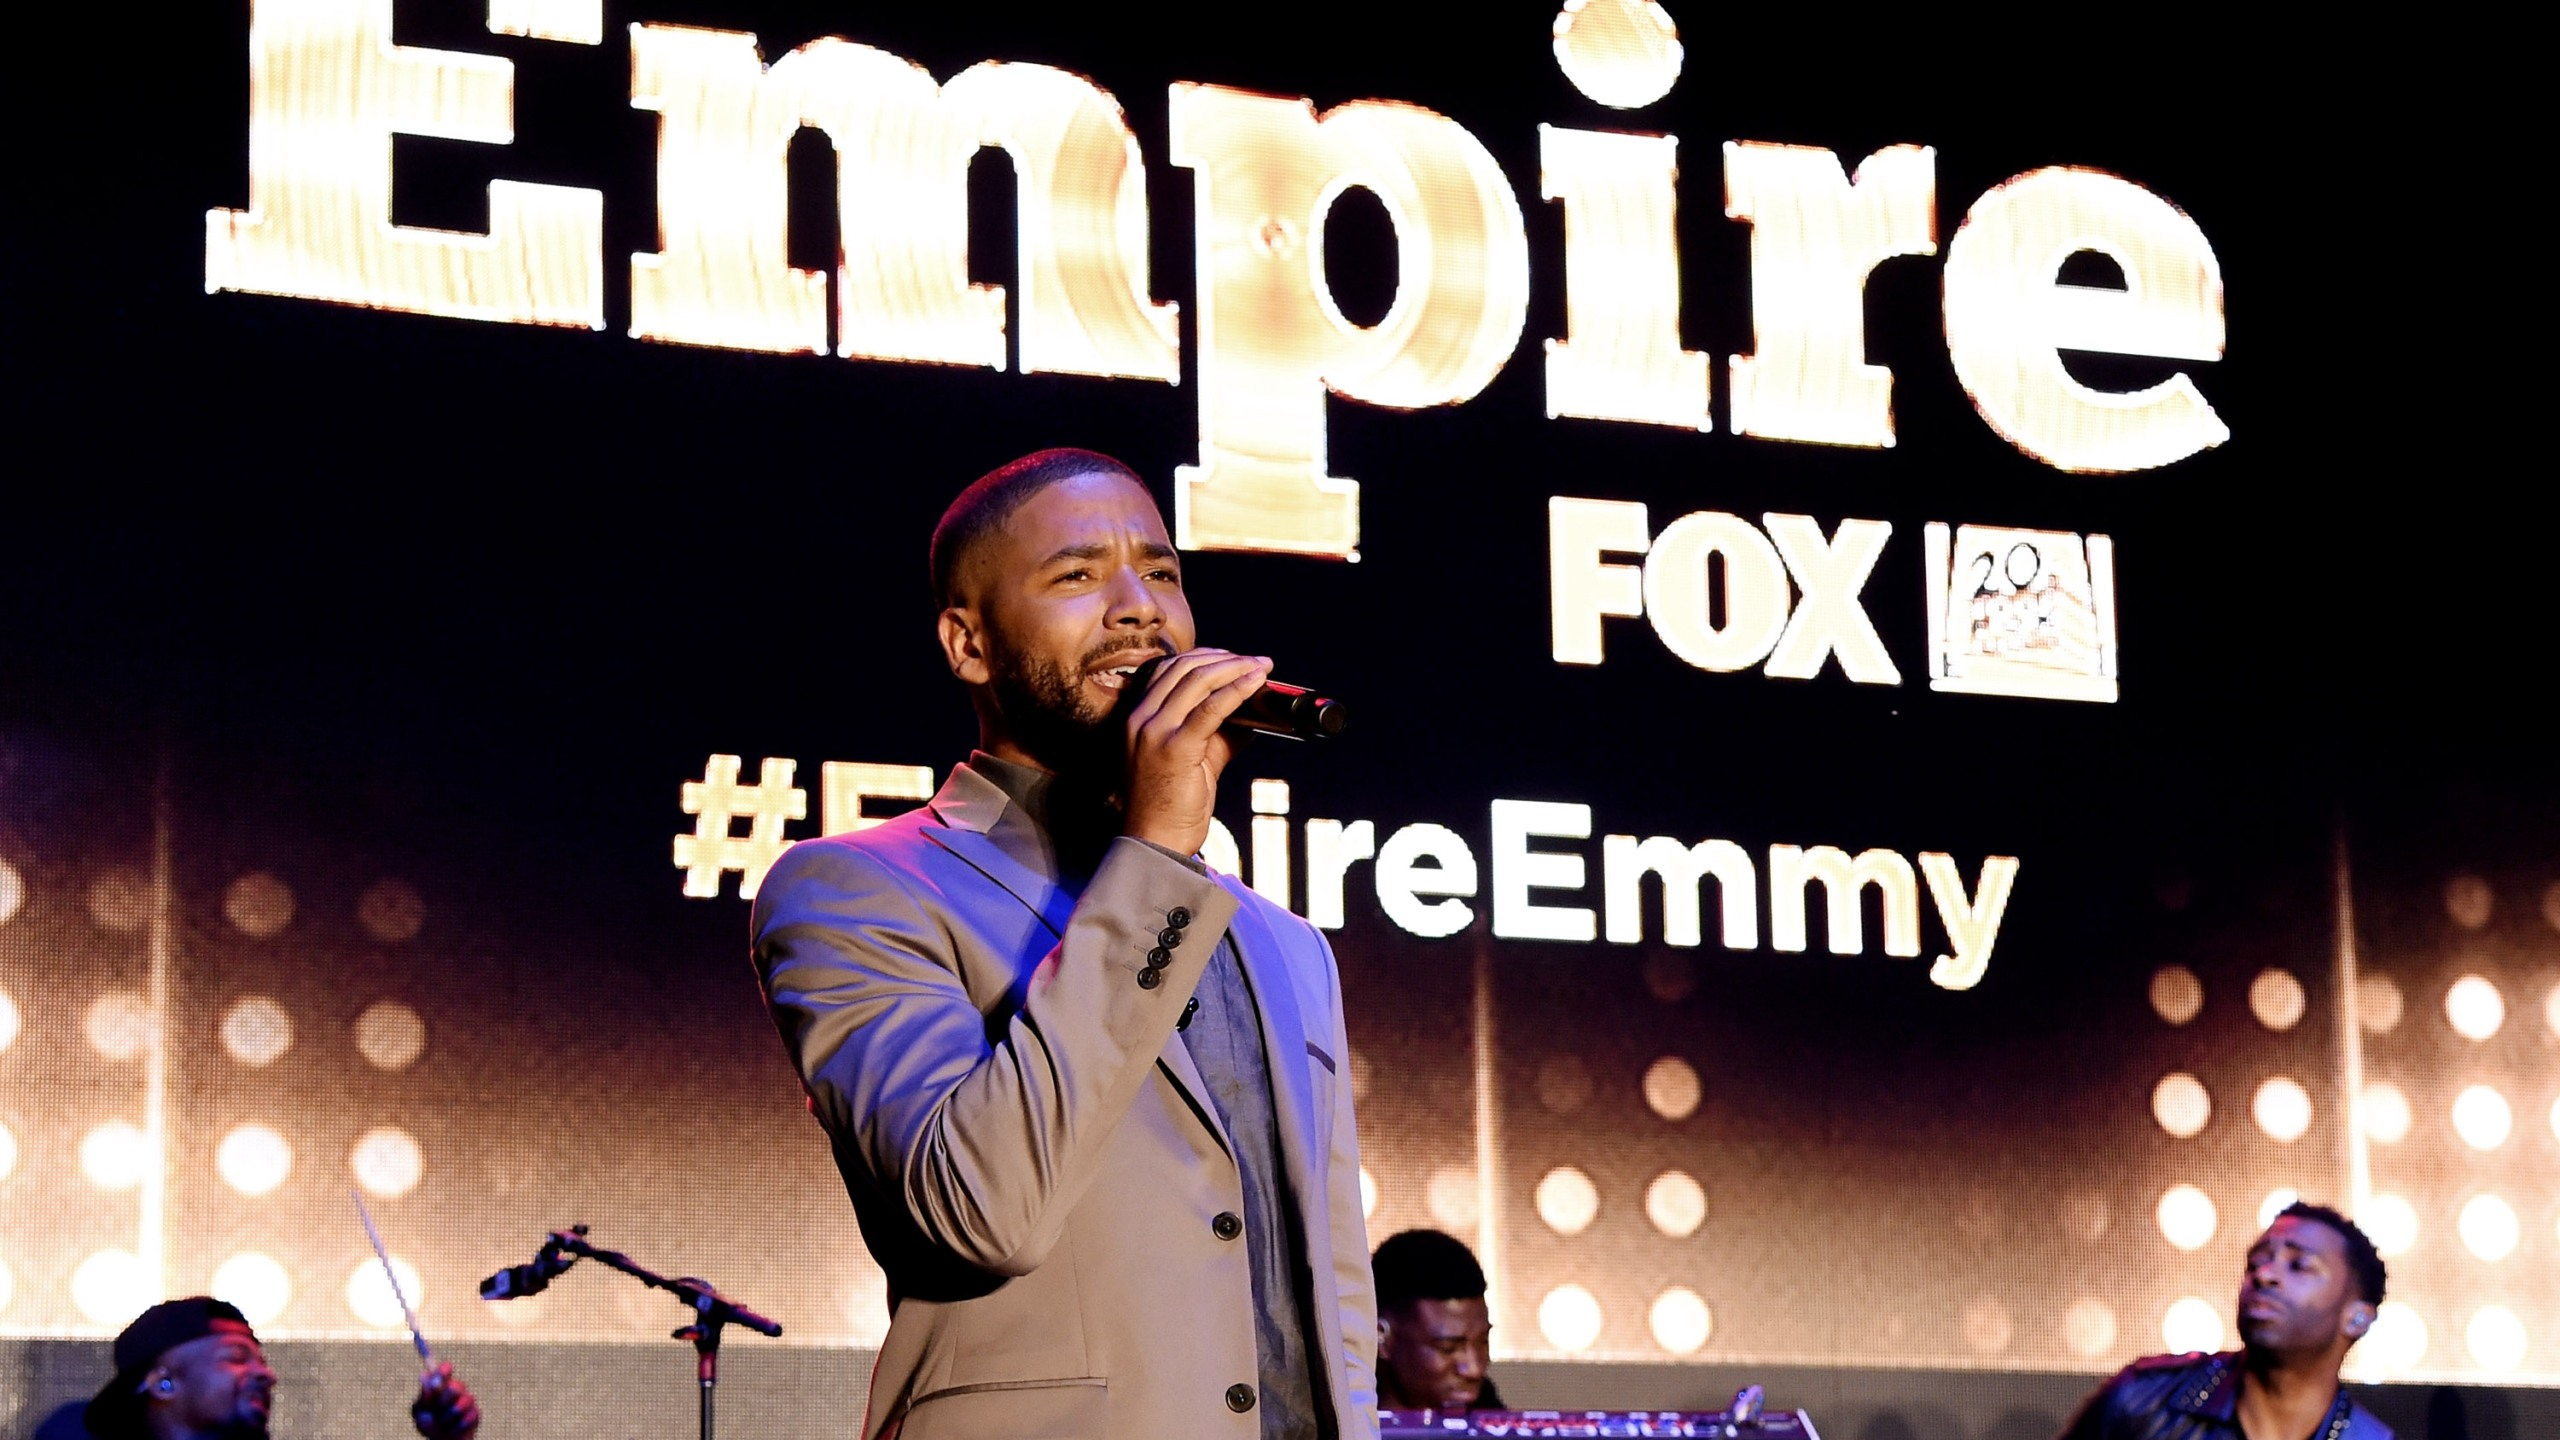 """Actor/singer Jussie Smollett performs at the Television Academy event for Fox TV's """"Empire"""" - A Performance Under The Stars at The Grove on May 28, 2015, in Los Angeles. (Credit: Kevin Winter/Getty Images)"""